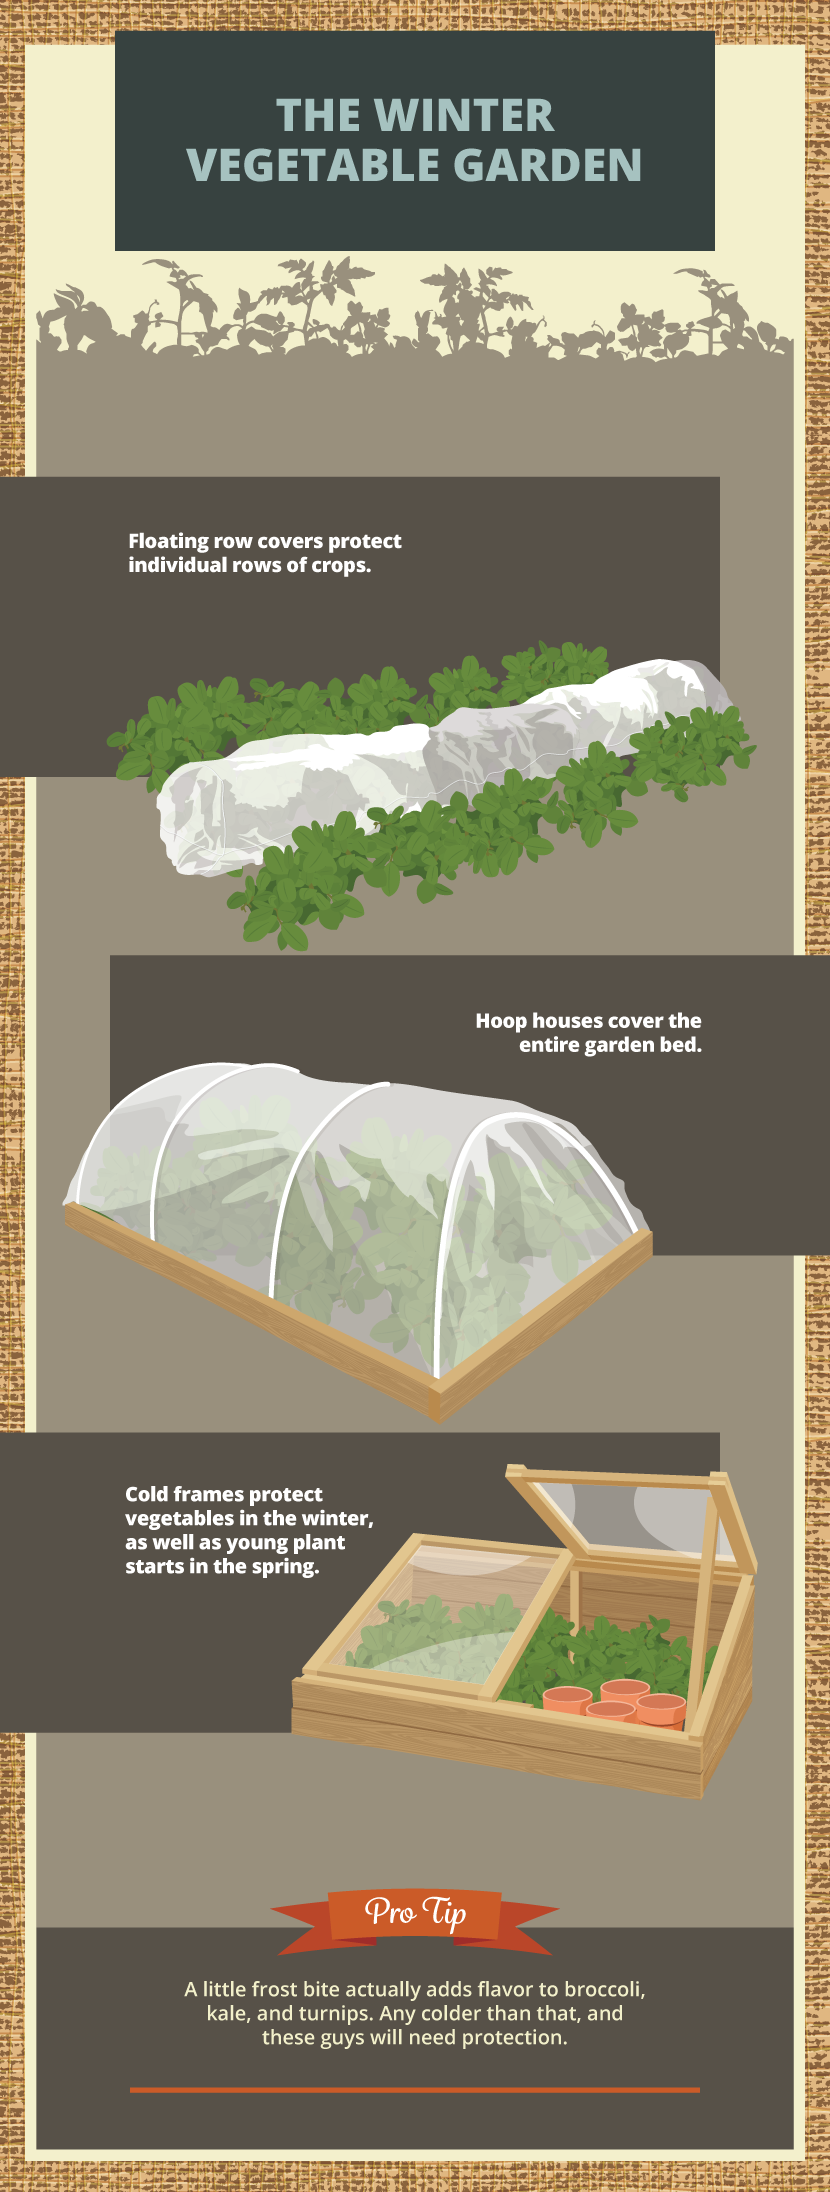 Winter Vegetable Gardening - Preparing Your Garden For Winter